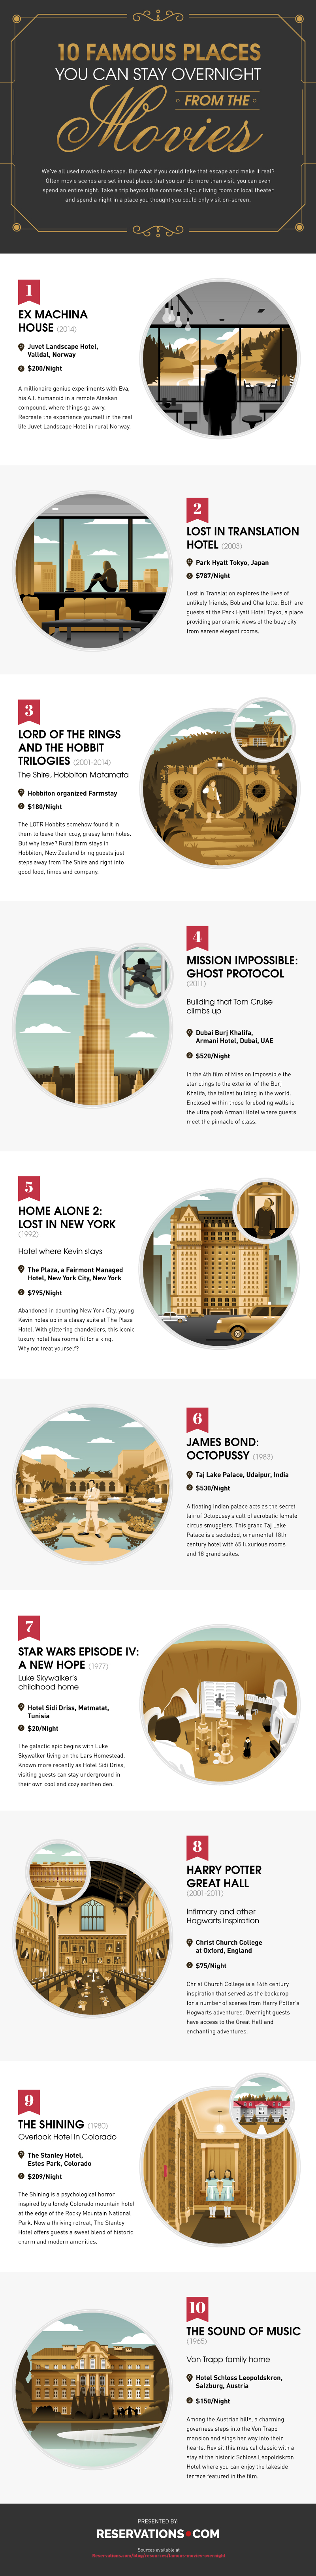 10 famous places you can stay overnight infographic